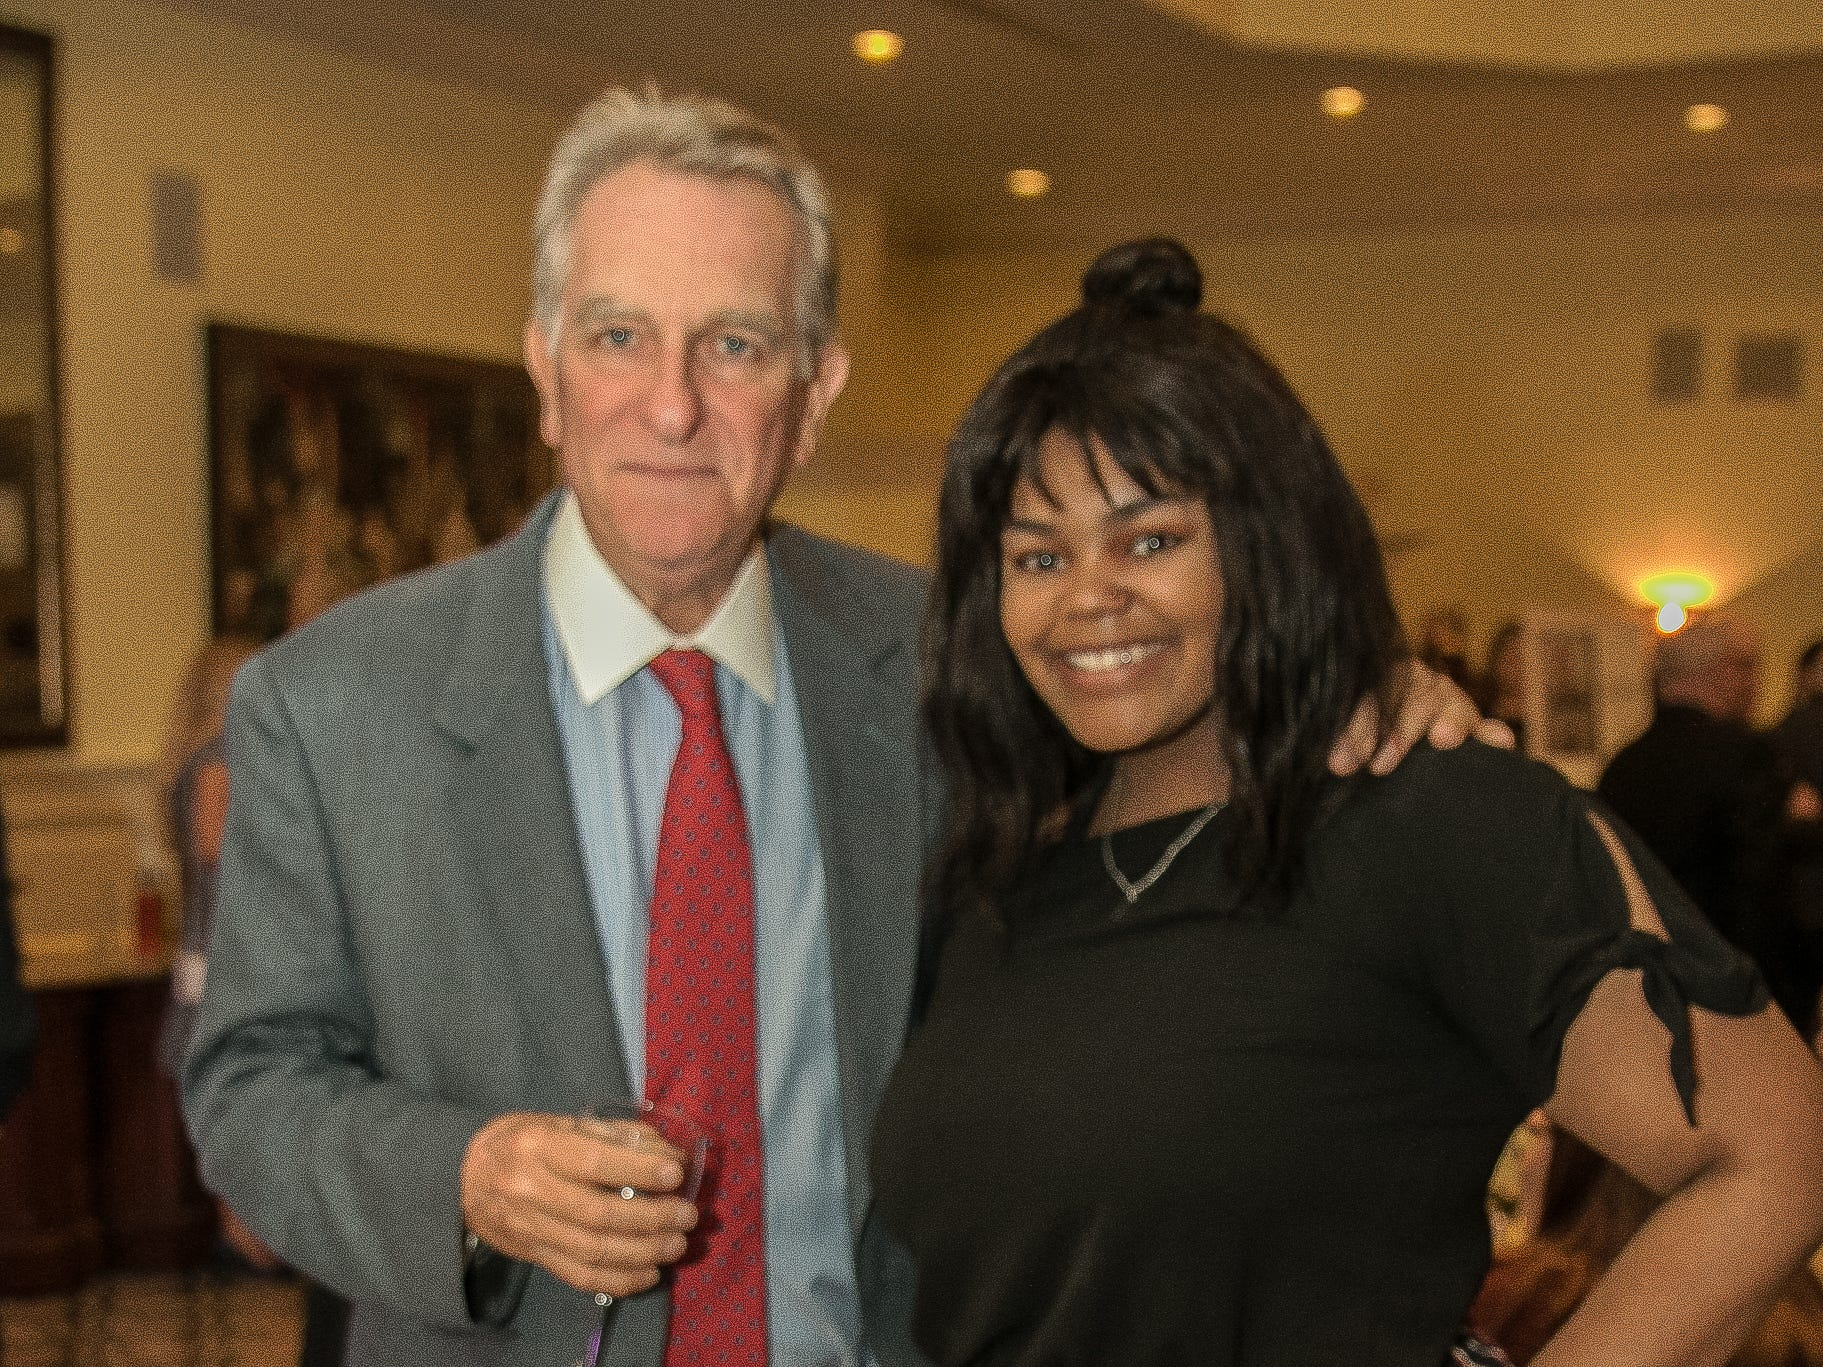 Mike Walsh- Board President, Briana Brown. The Emmanuel Cancer Foundation 9th Annual Bash at The Brick House. 03/15/2019